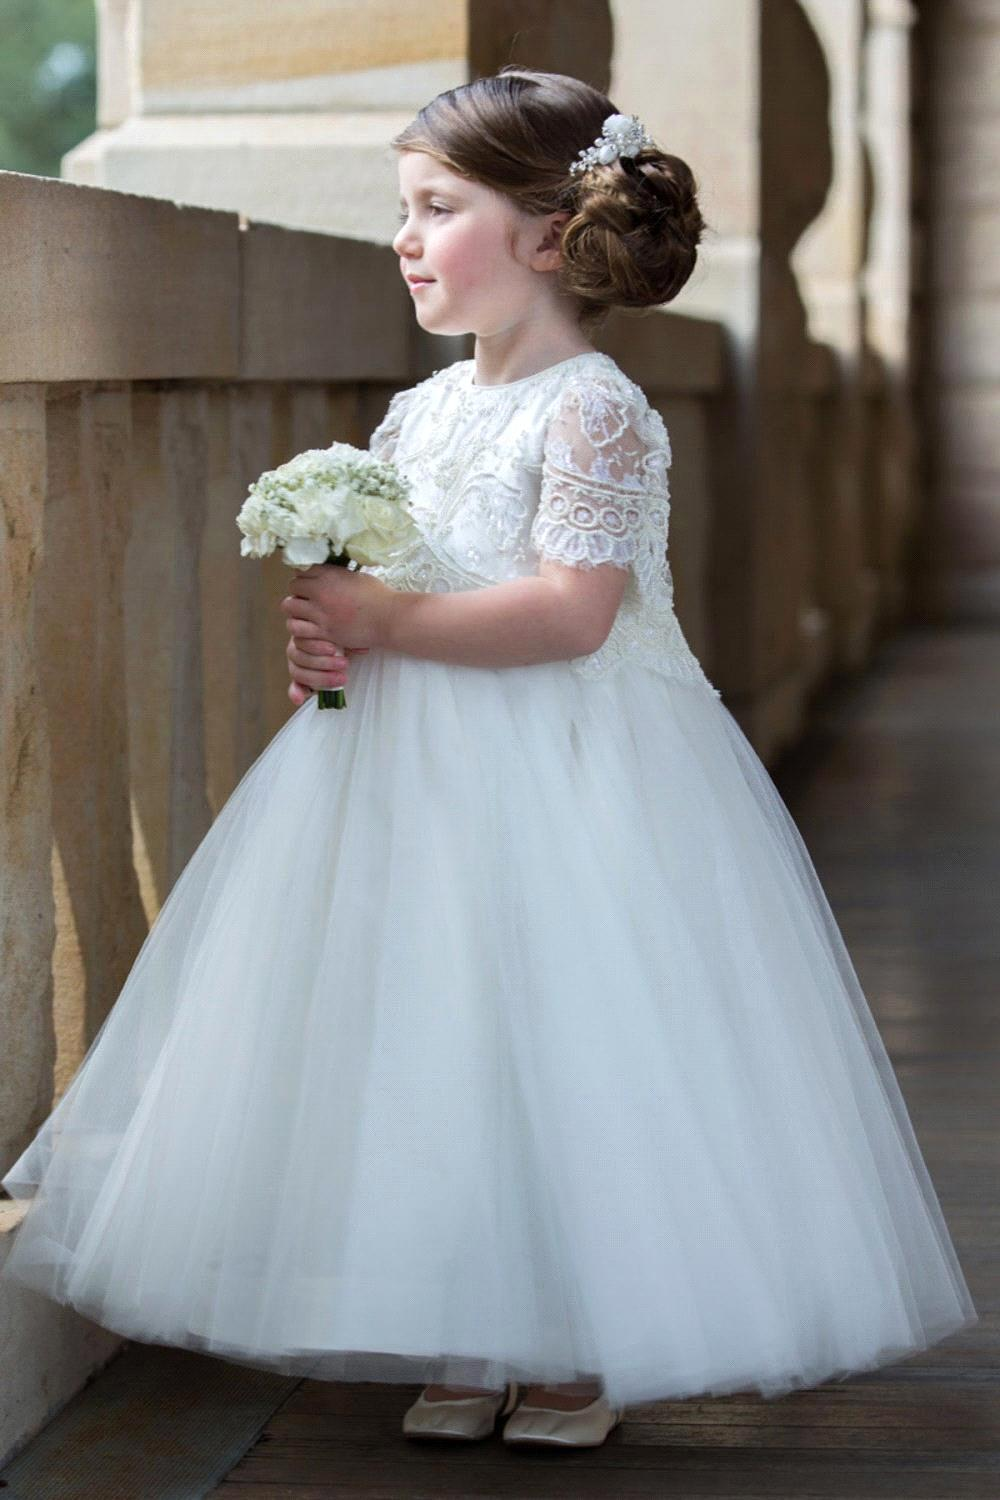 Perfect Wedding Gowns For Short Girls Crest - All Wedding Dresses ...